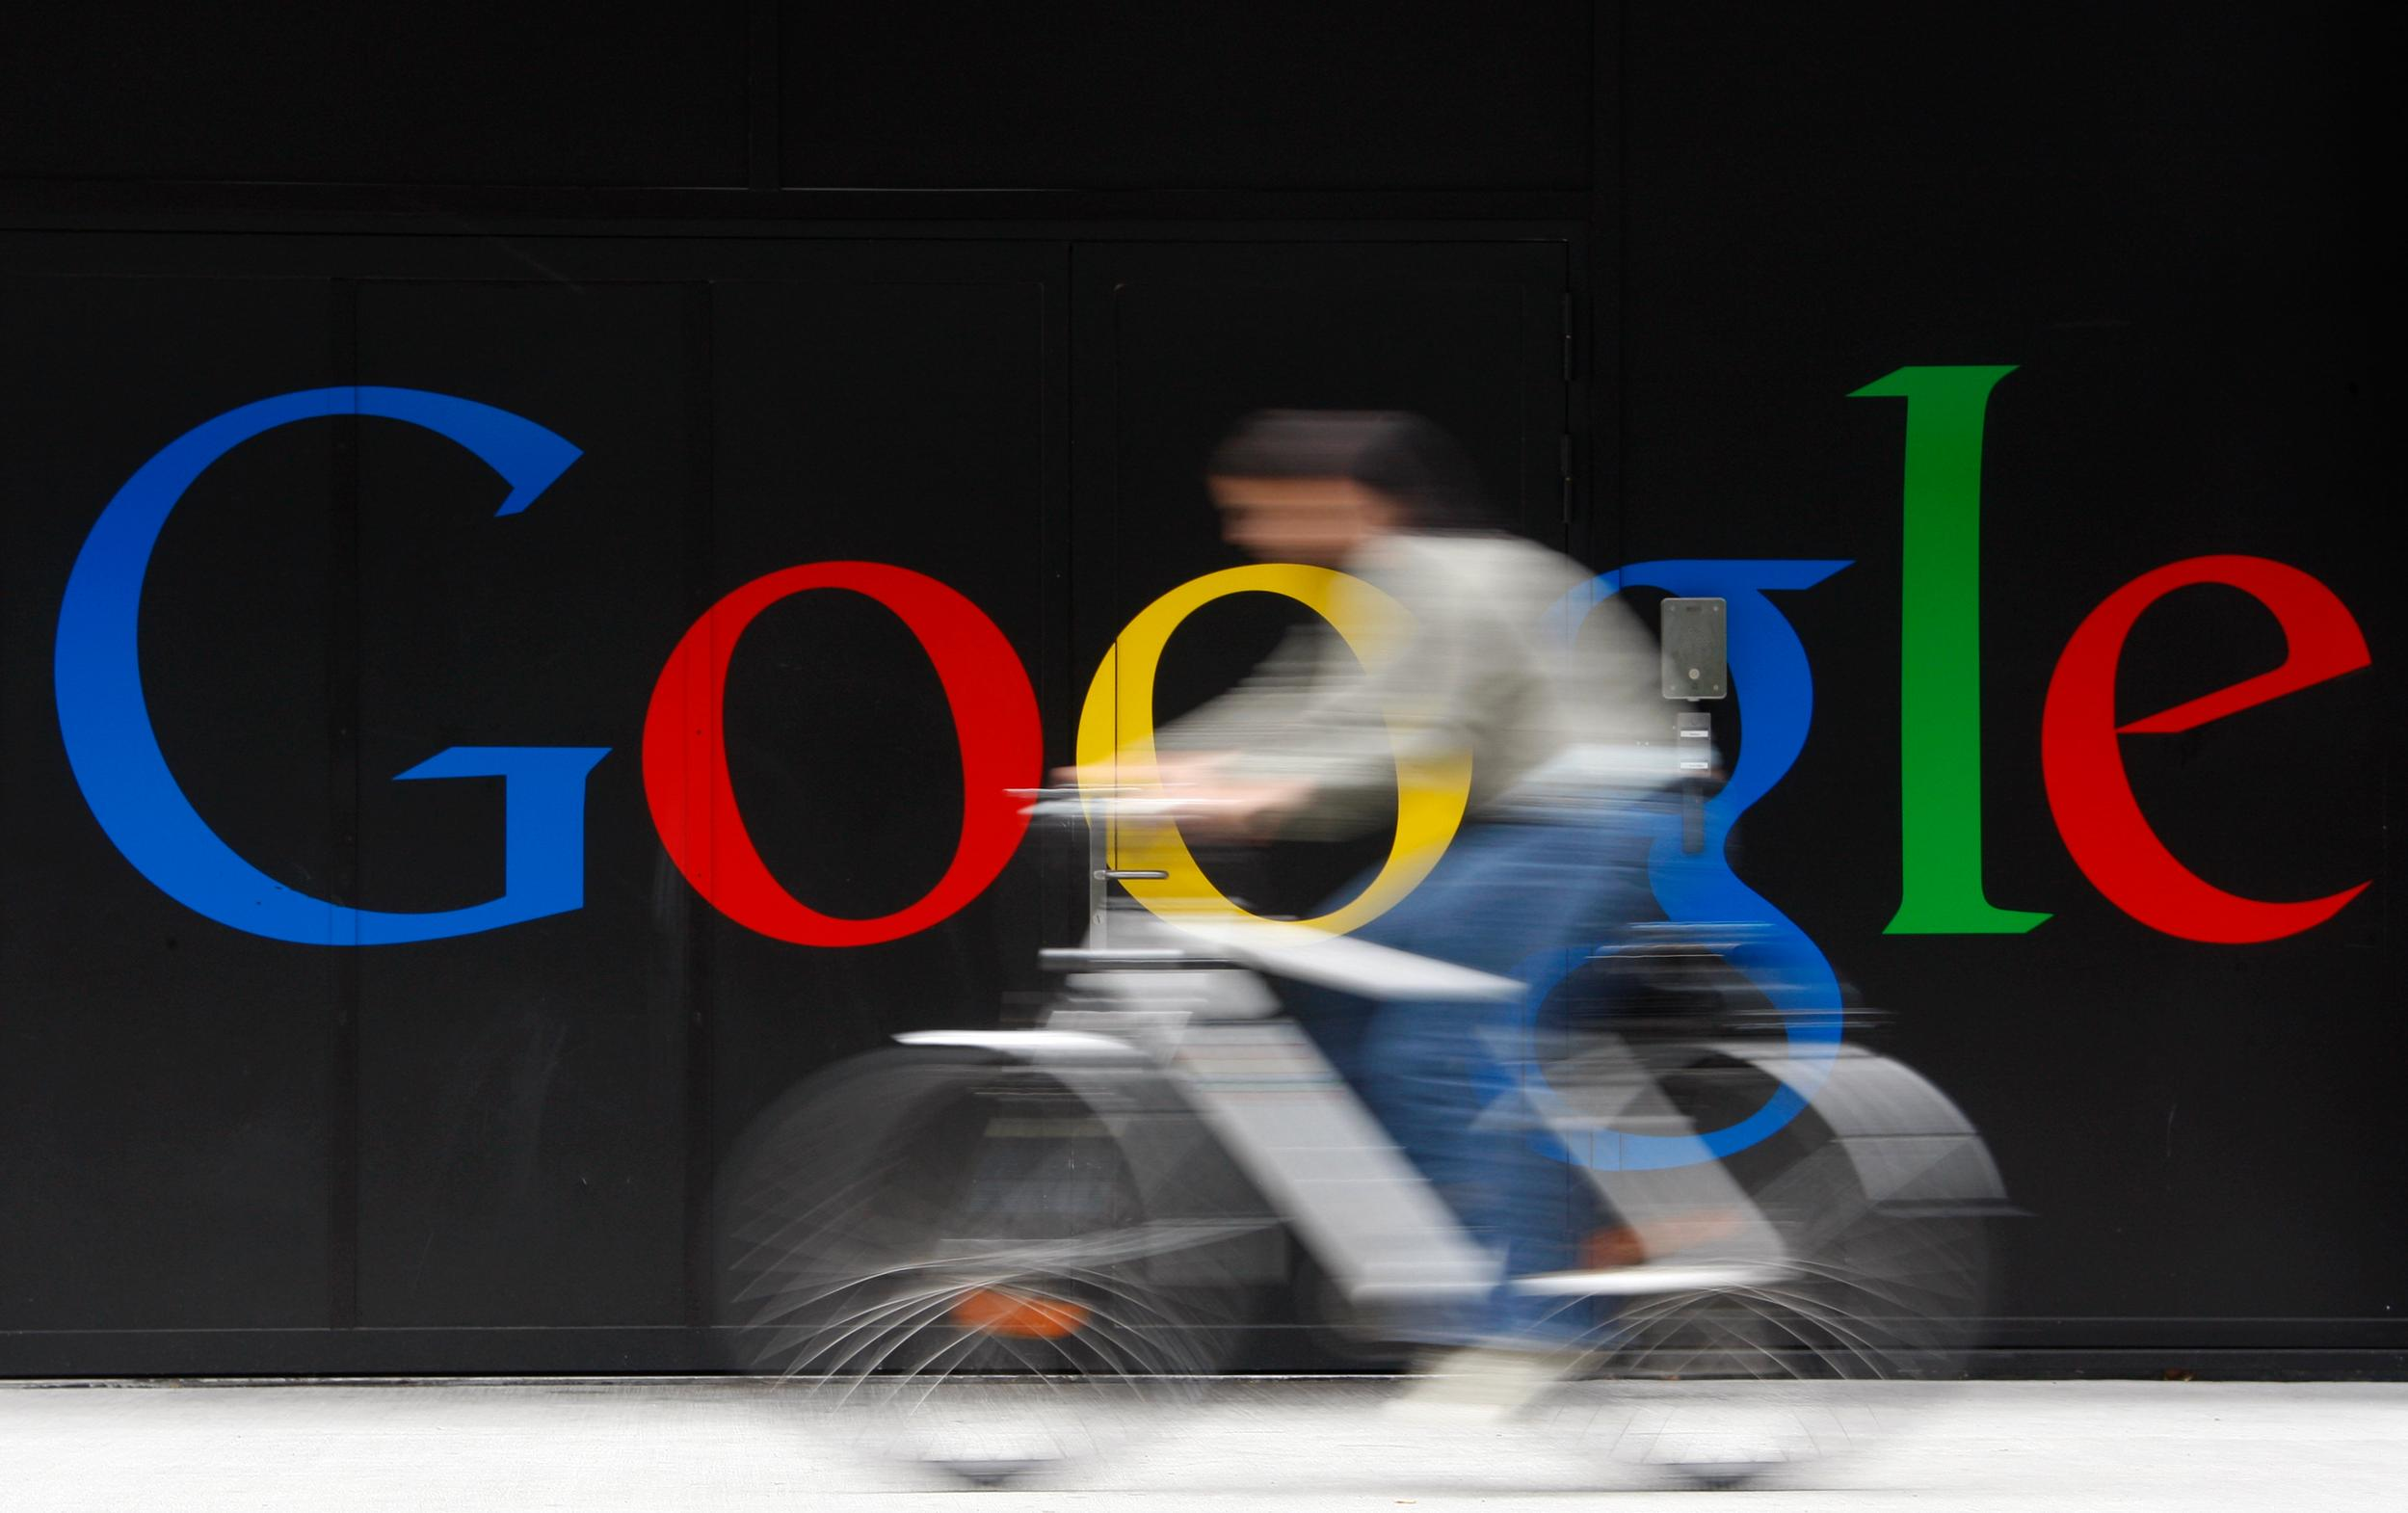 Commuter-on-a-bicycle-in-front-of-a-Google-sign.jpg